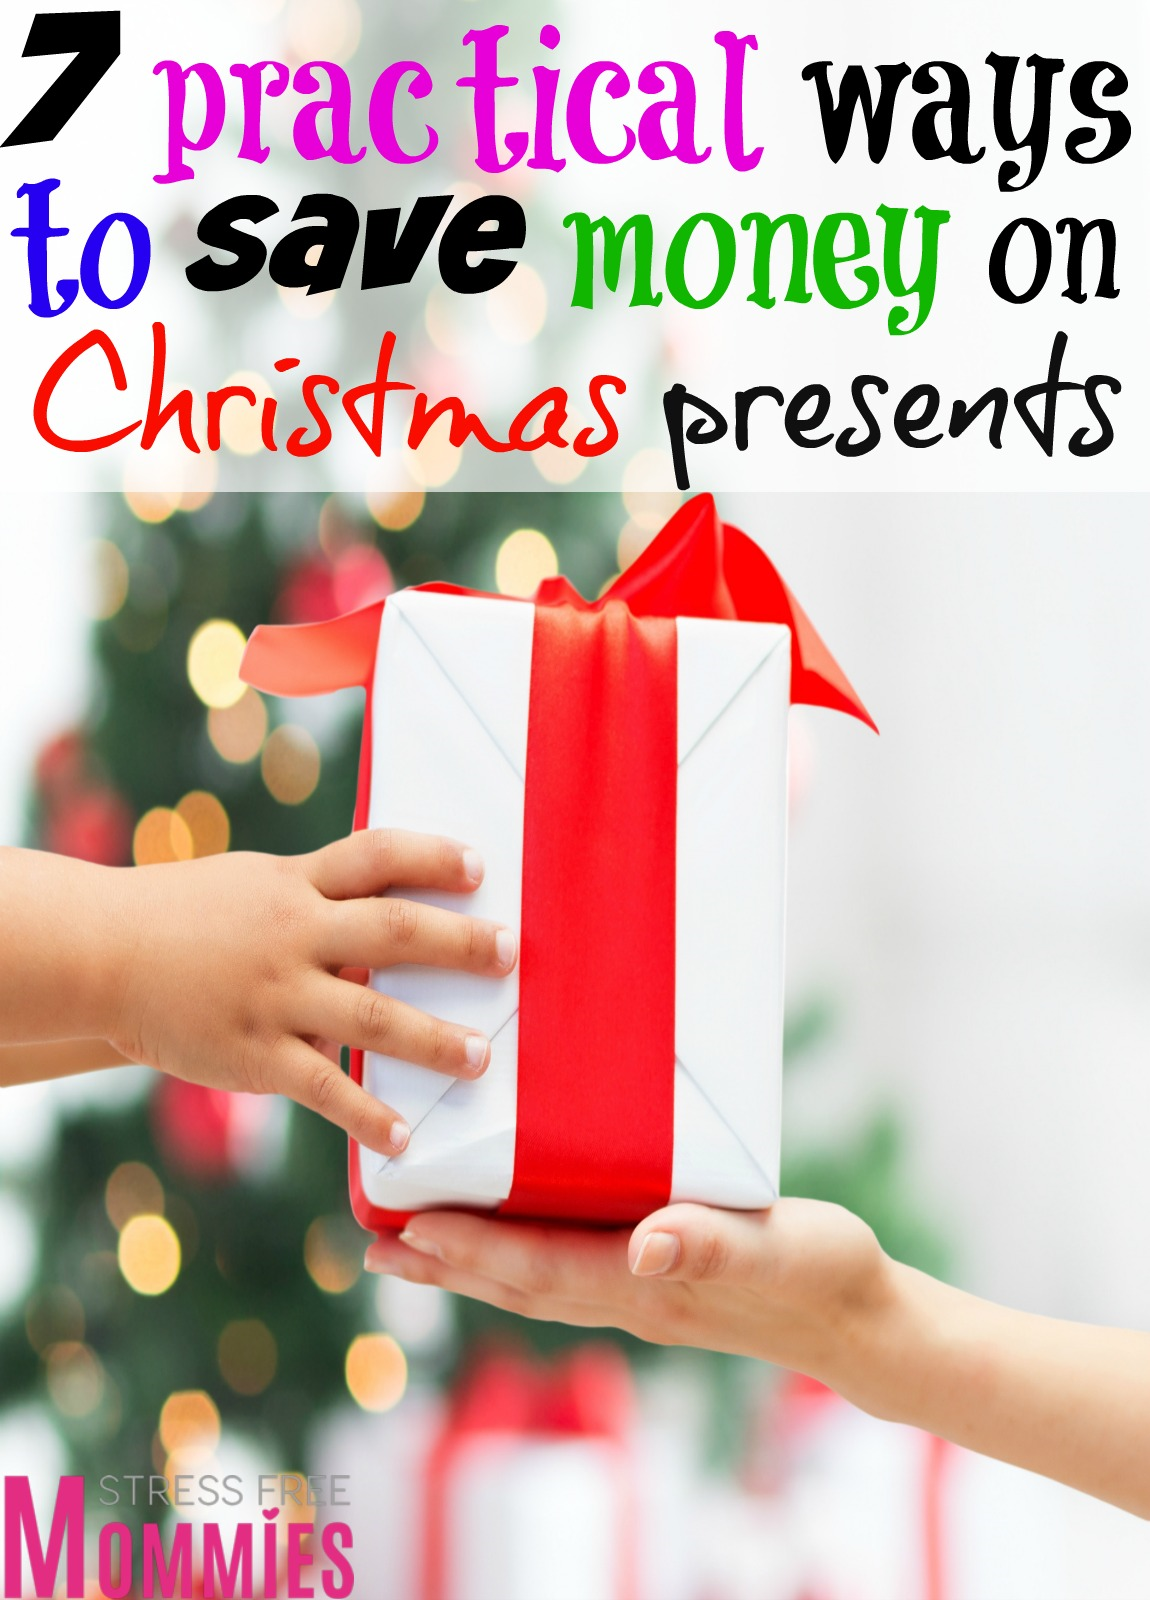 This is how to save money on Christmas presents! Simple but effective tips that\'s going to help you save money on those expensive Christmas presents!